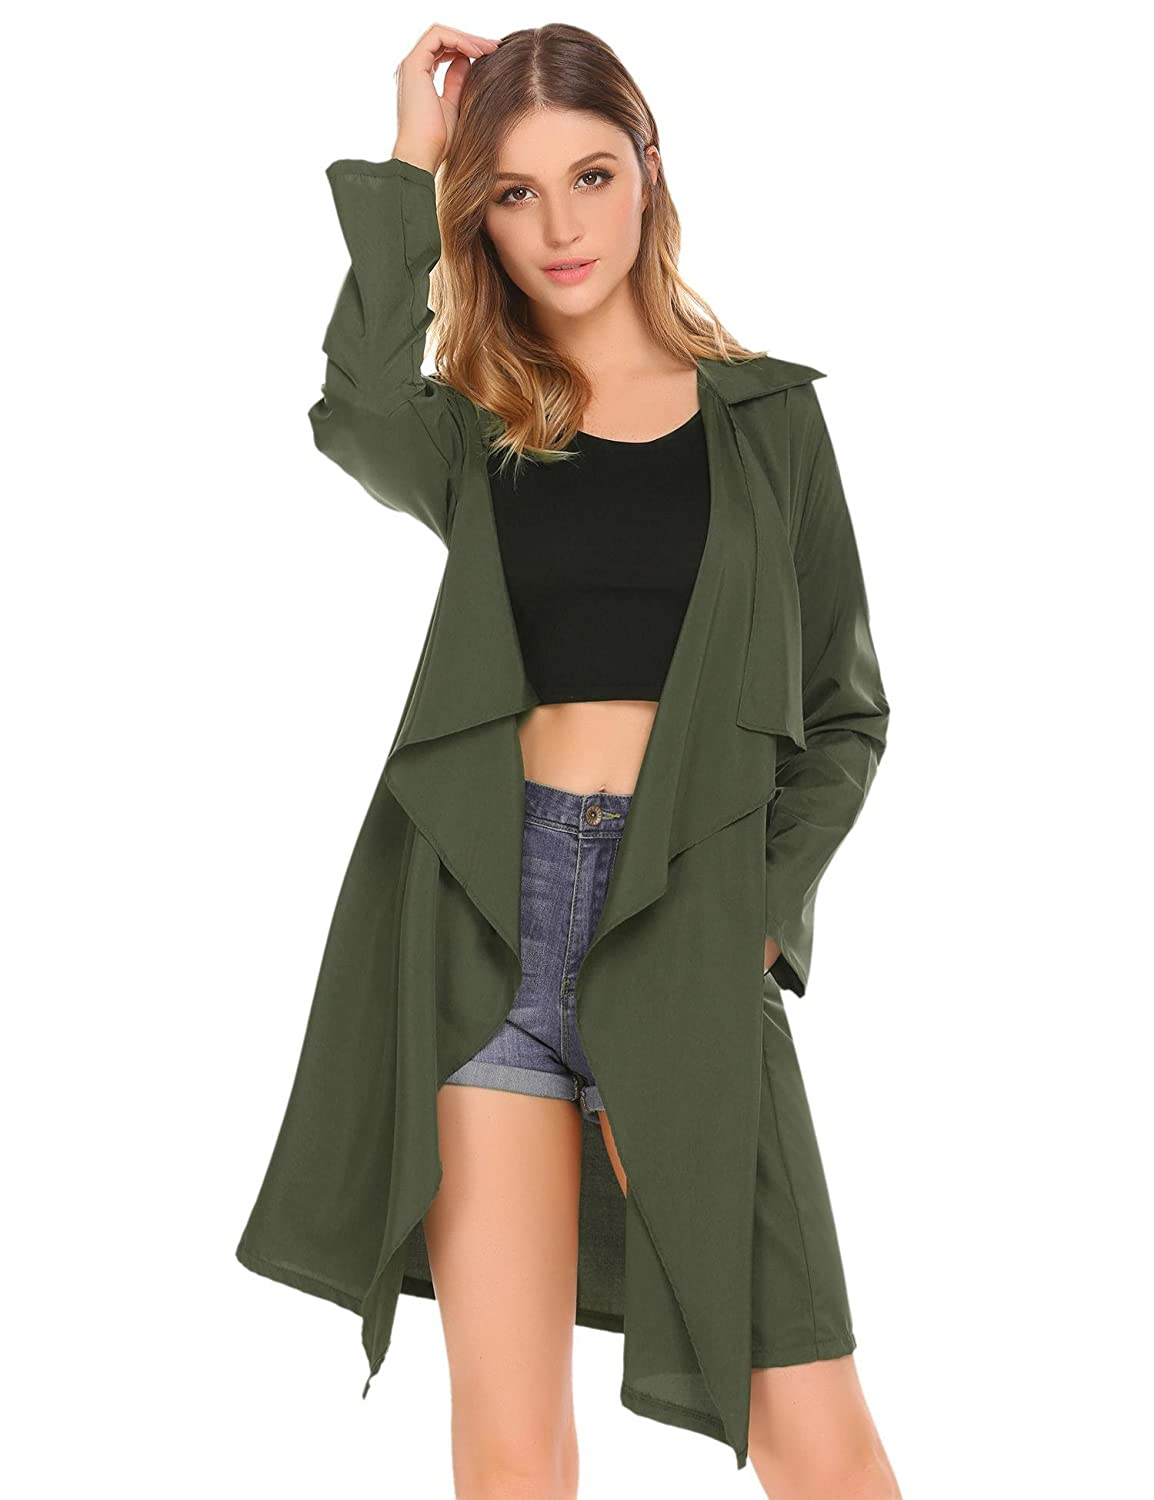 Mofavor Women's Lightweight Long Sleeve Draped Open Front Trench Coat Cardigan with Pockets